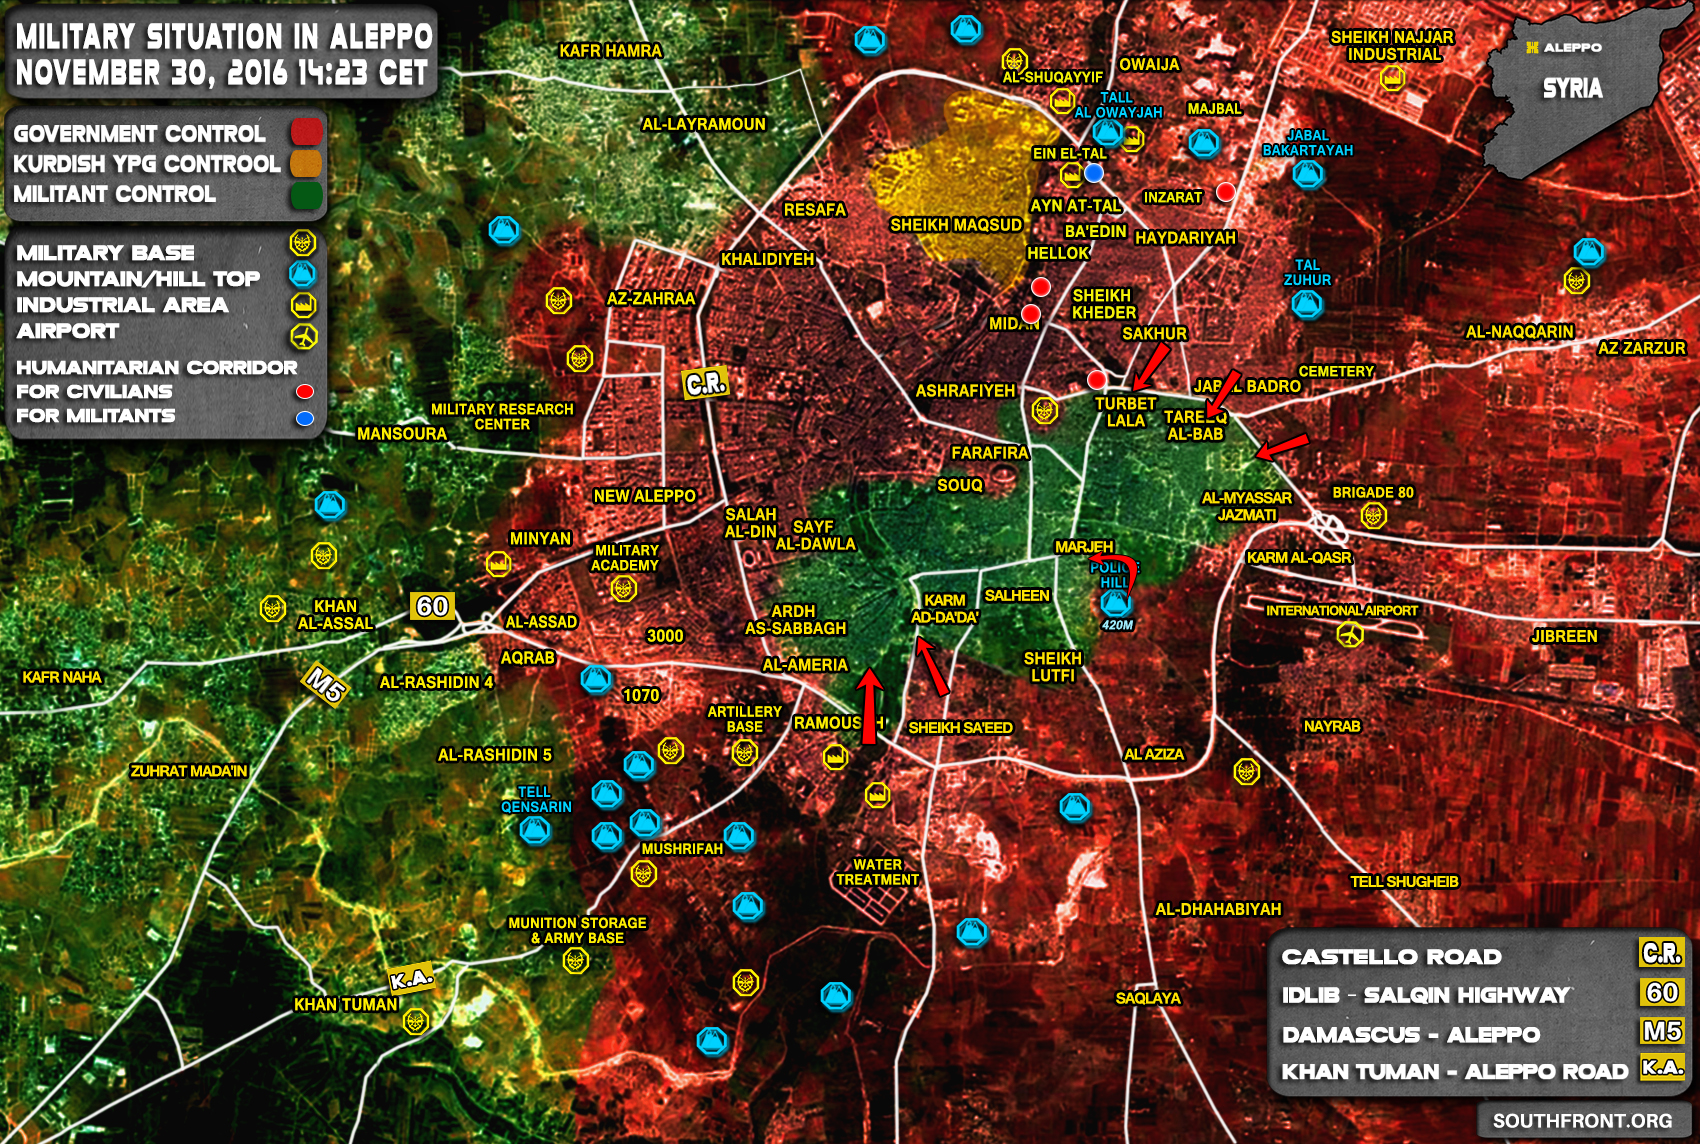 Syrian Army Liberated Sheikh Saeed Neighborhood of Aleppo City (Map)